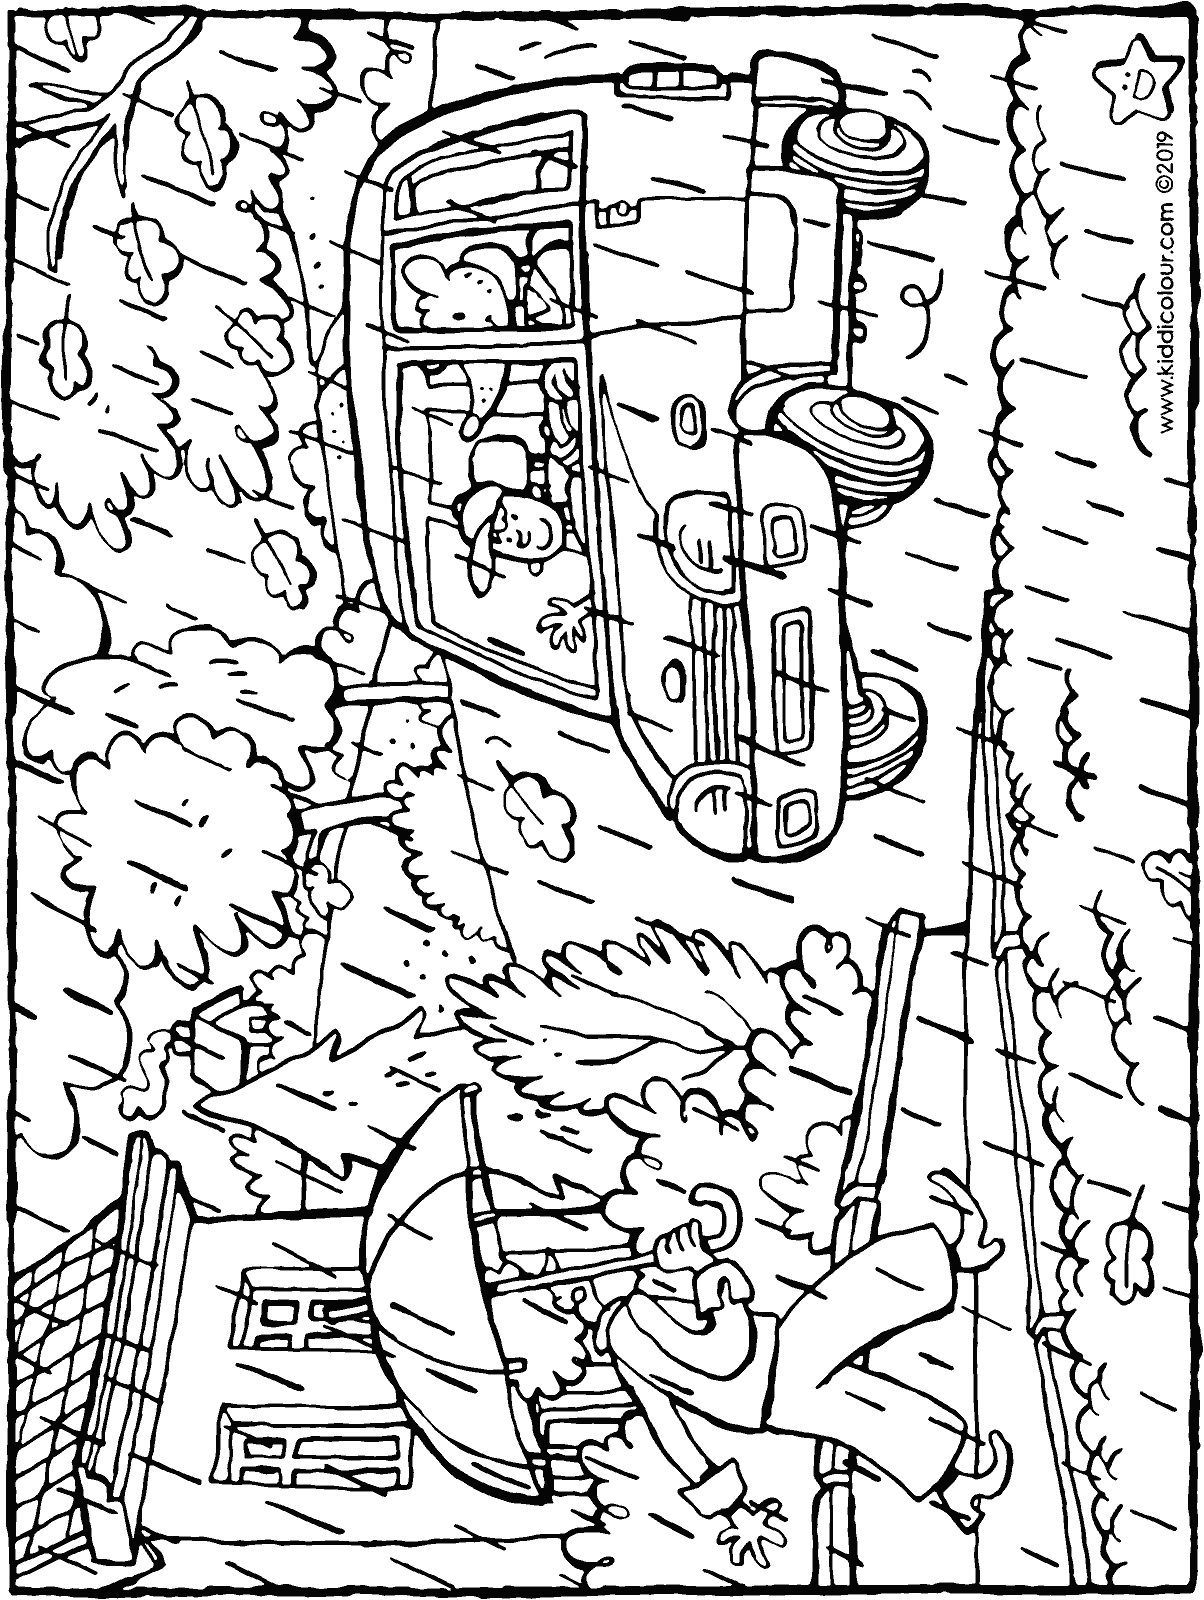 through the wind and the rain - colouring page drawing picture 01H